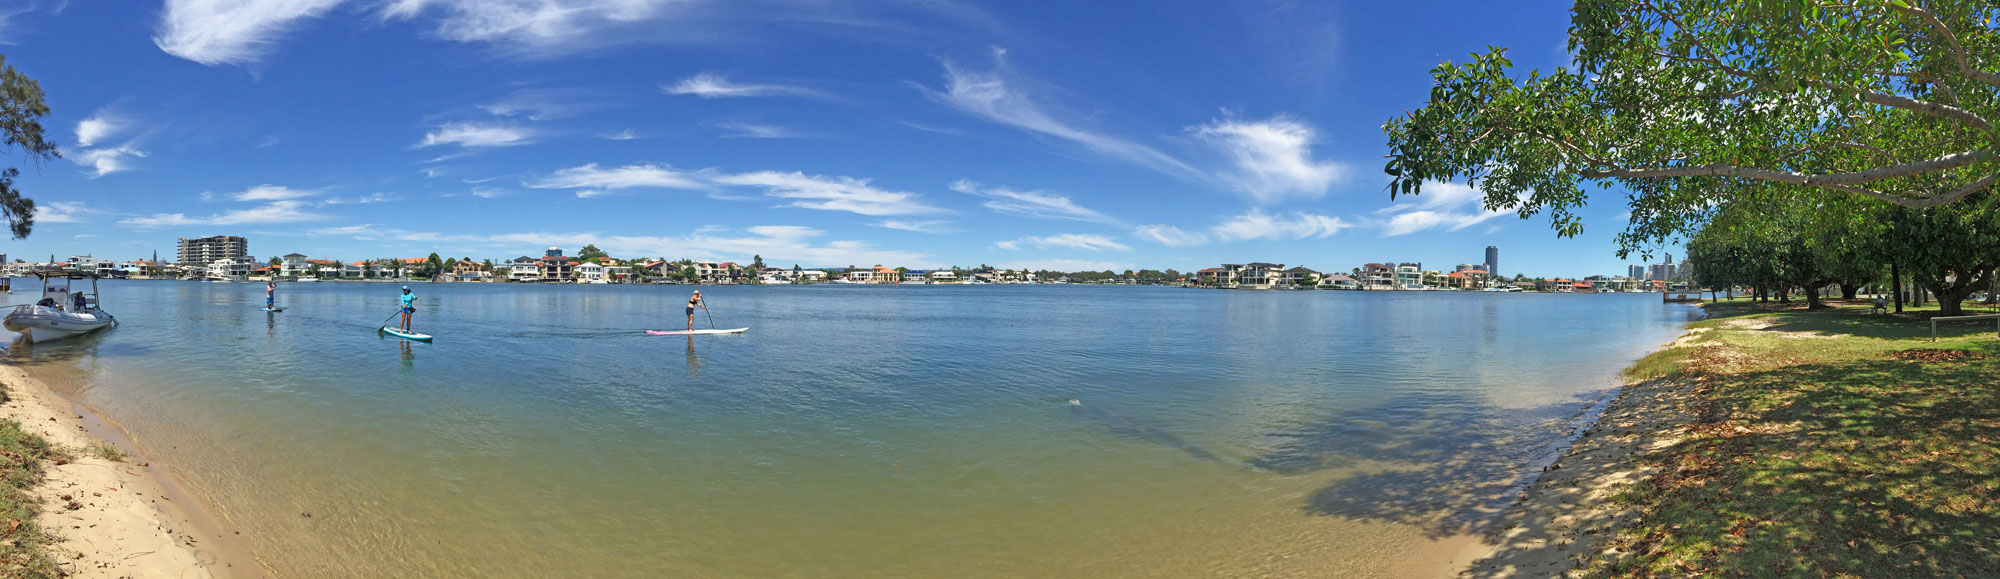 Budds Beach Panorama